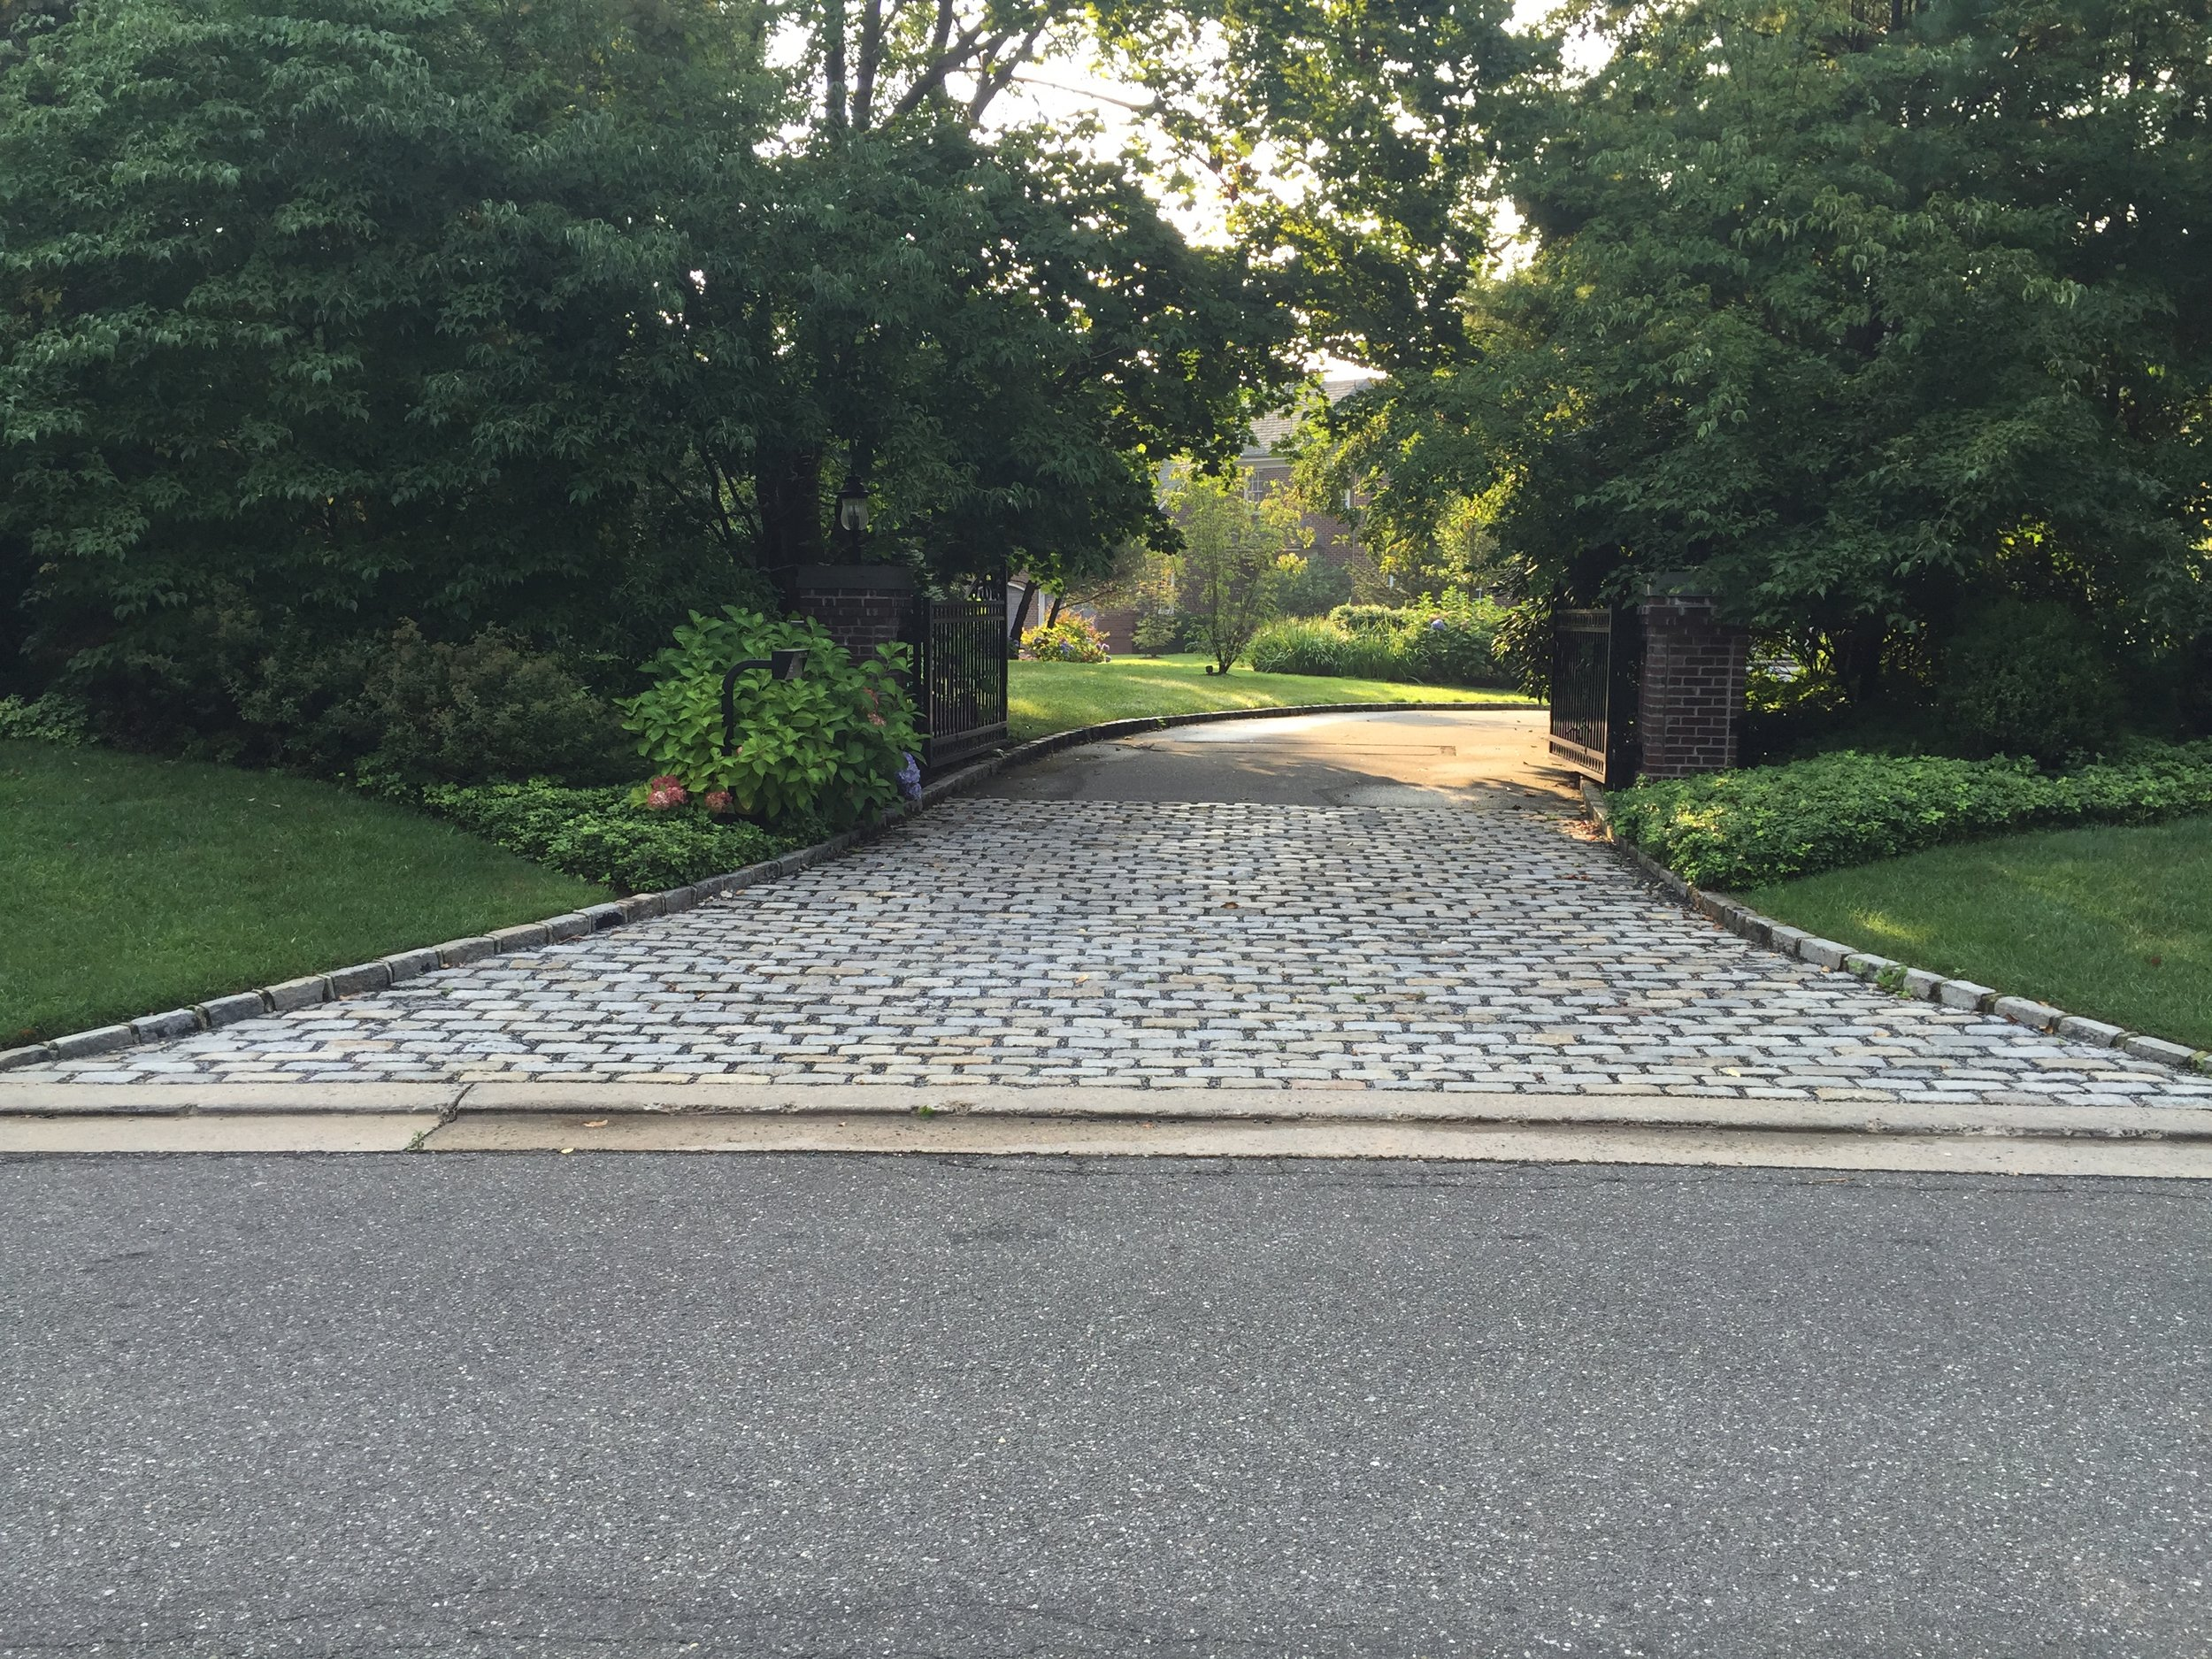 5 Landscape Architecture Ideas to Improve Your Oyster Bay, NY, Driveway.JPG